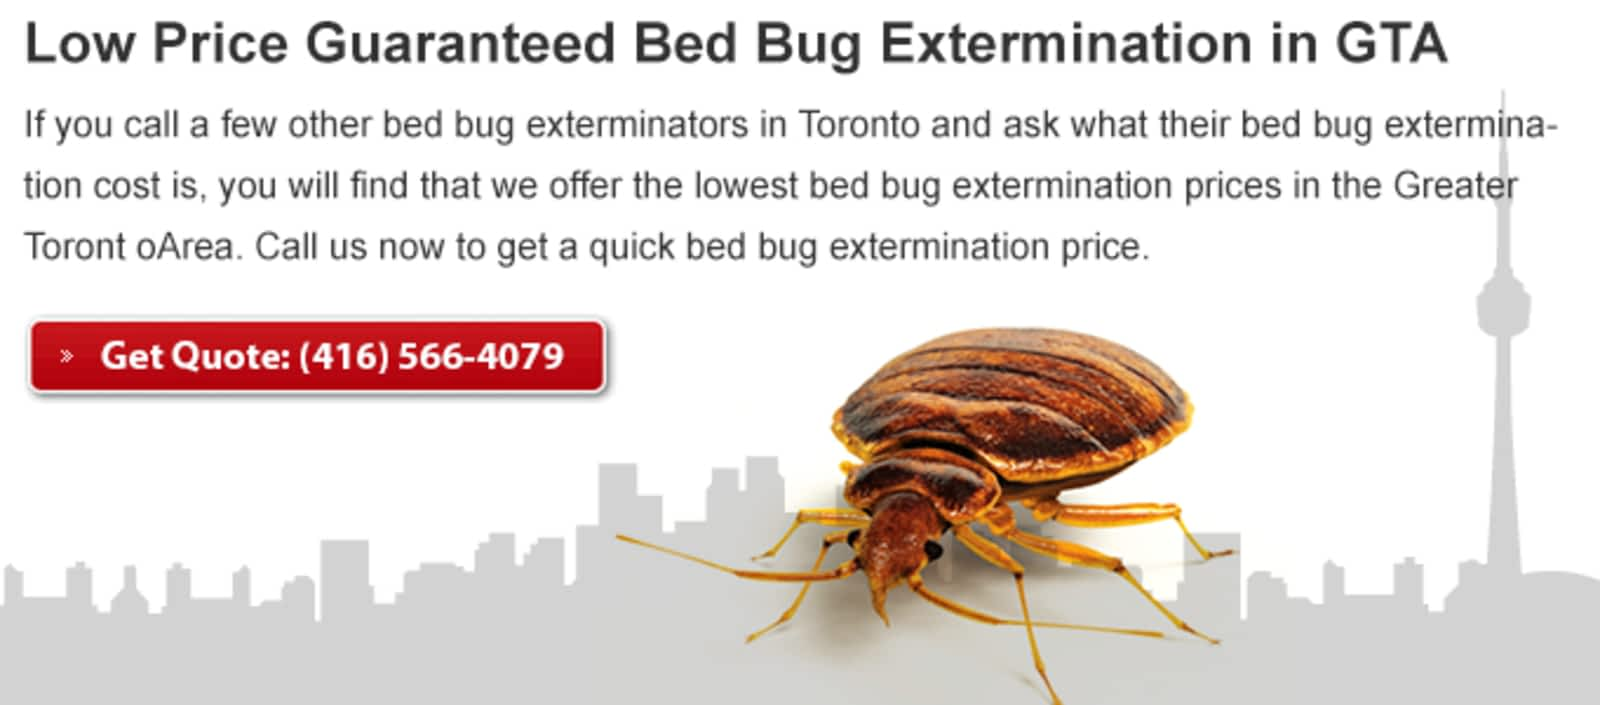 front pest extermination on bug inspection mattress winchester a company royal exterminator bugs and bed control